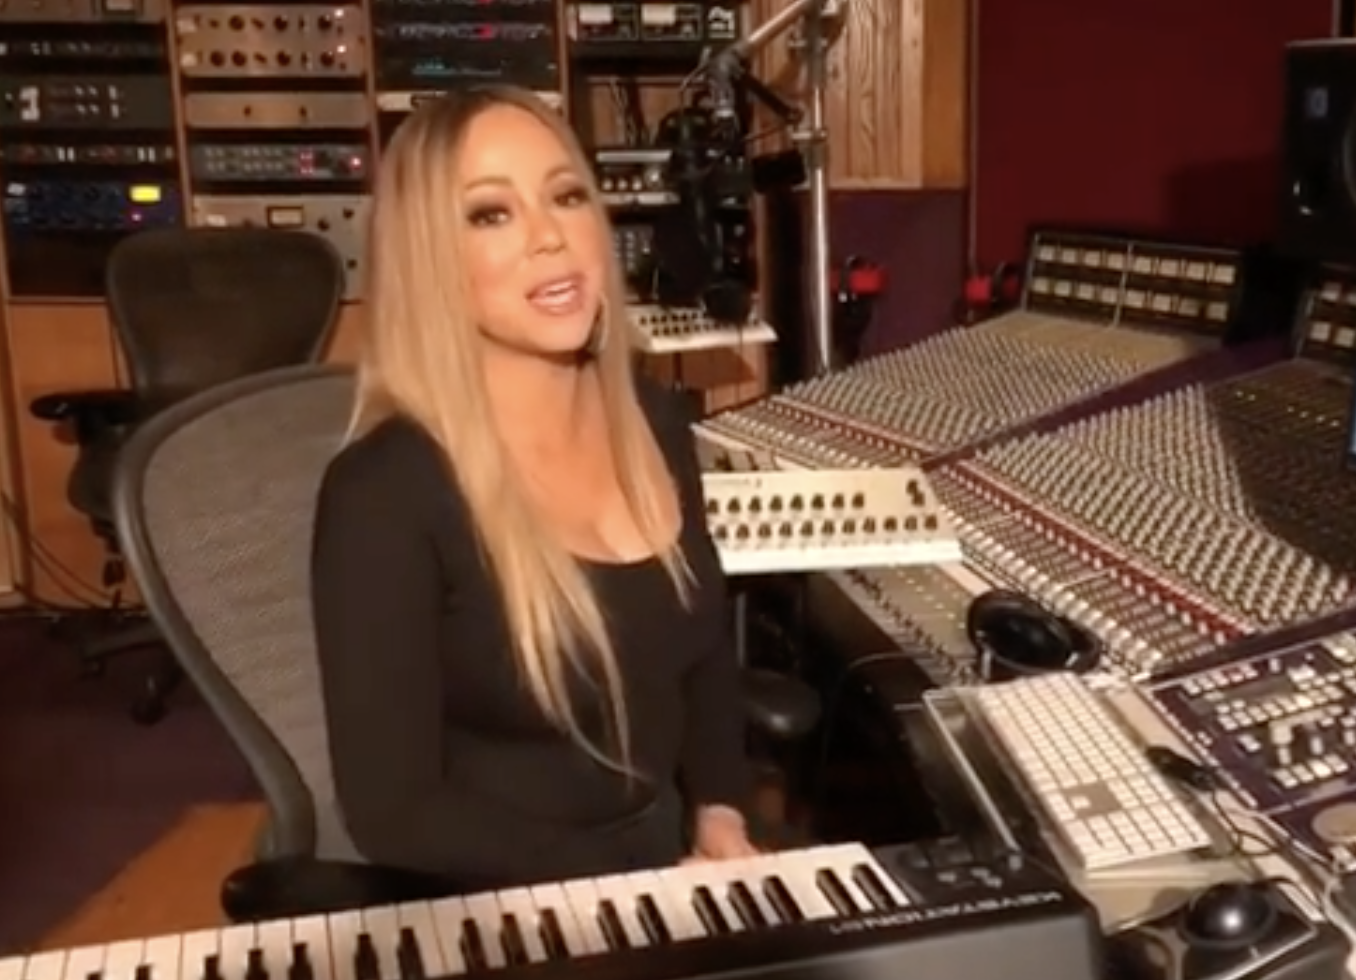 """""""Happy Thanksgiving, everybody! 🦃 Let's be grateful for all the blessings in our lives this year and every year. In addition to that, I want to thank everyone for an amazing #Caution release week! Love, Mariah ❤""""   Mariah Carey, who posted a Thanksgiving video from the recording studio on Nov. 22, 2018"""